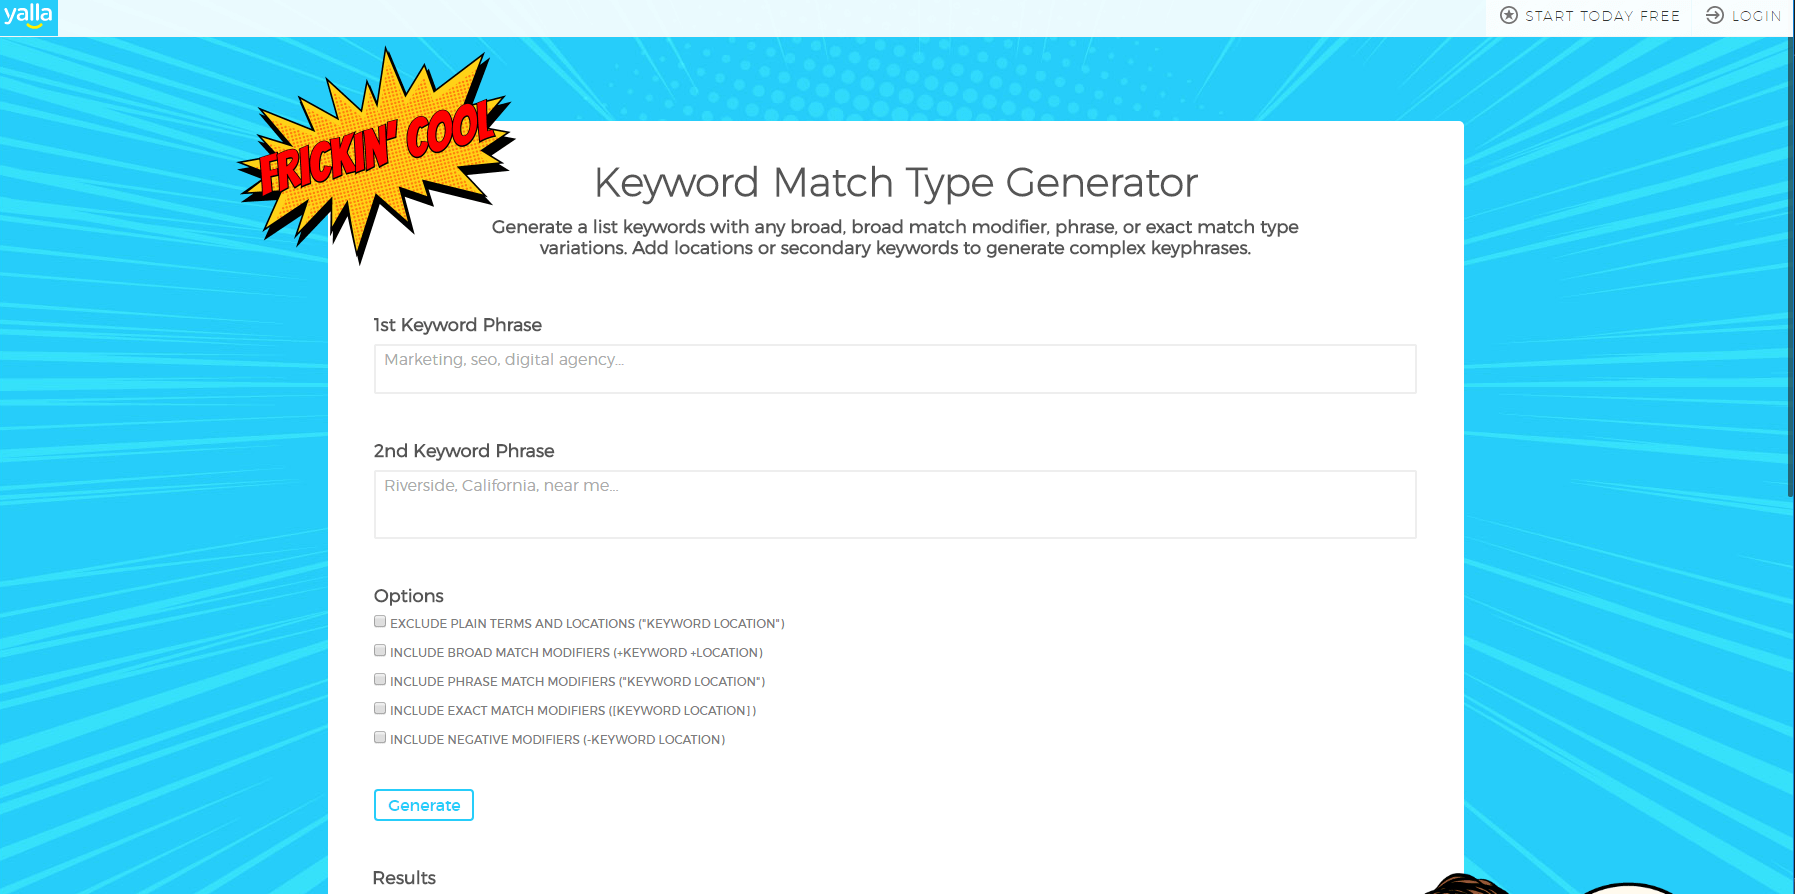 Yalla Keyword Match Type Generator